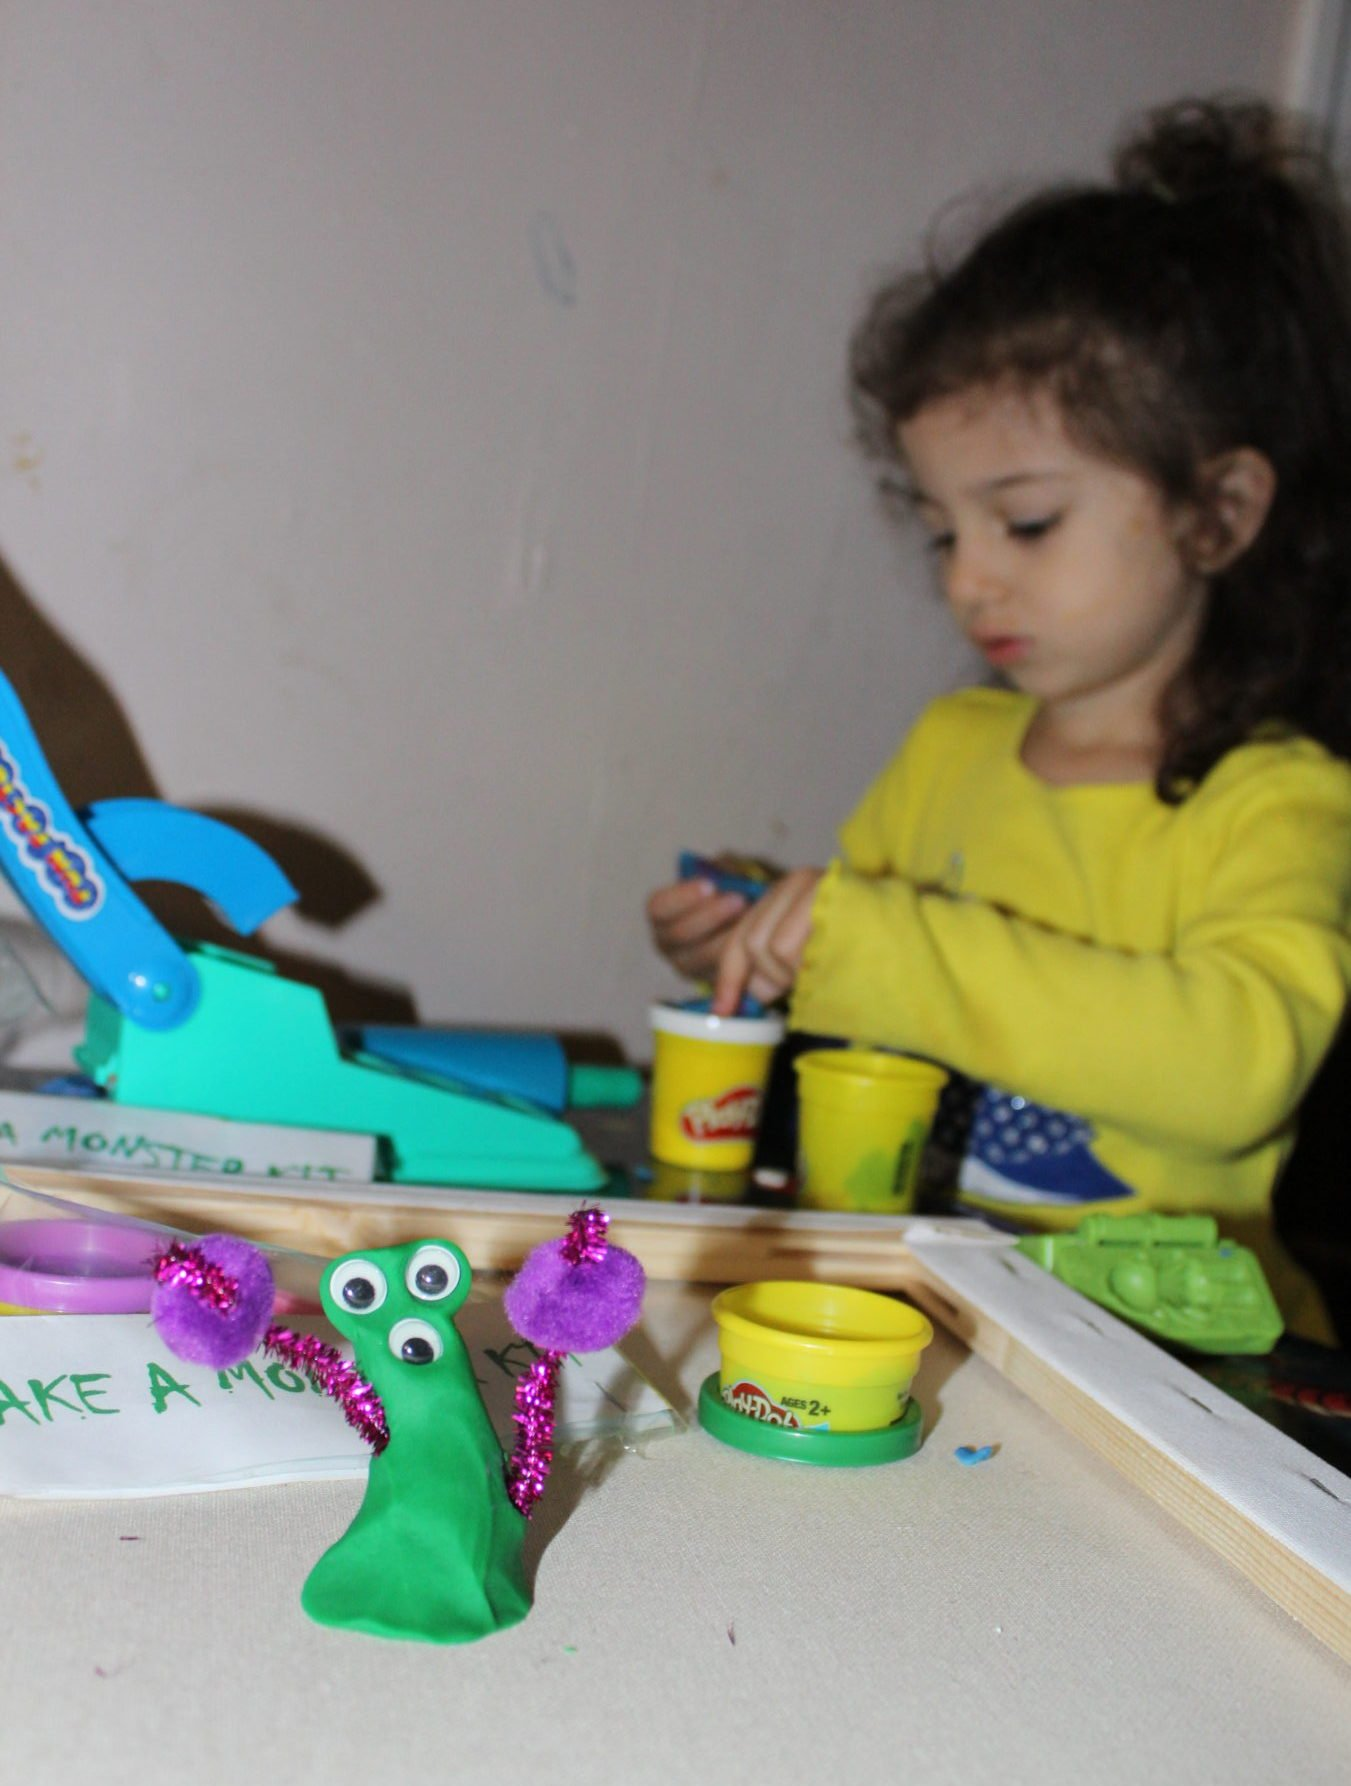 brunette toddler in yellow shirt putting together a play dough monster kit